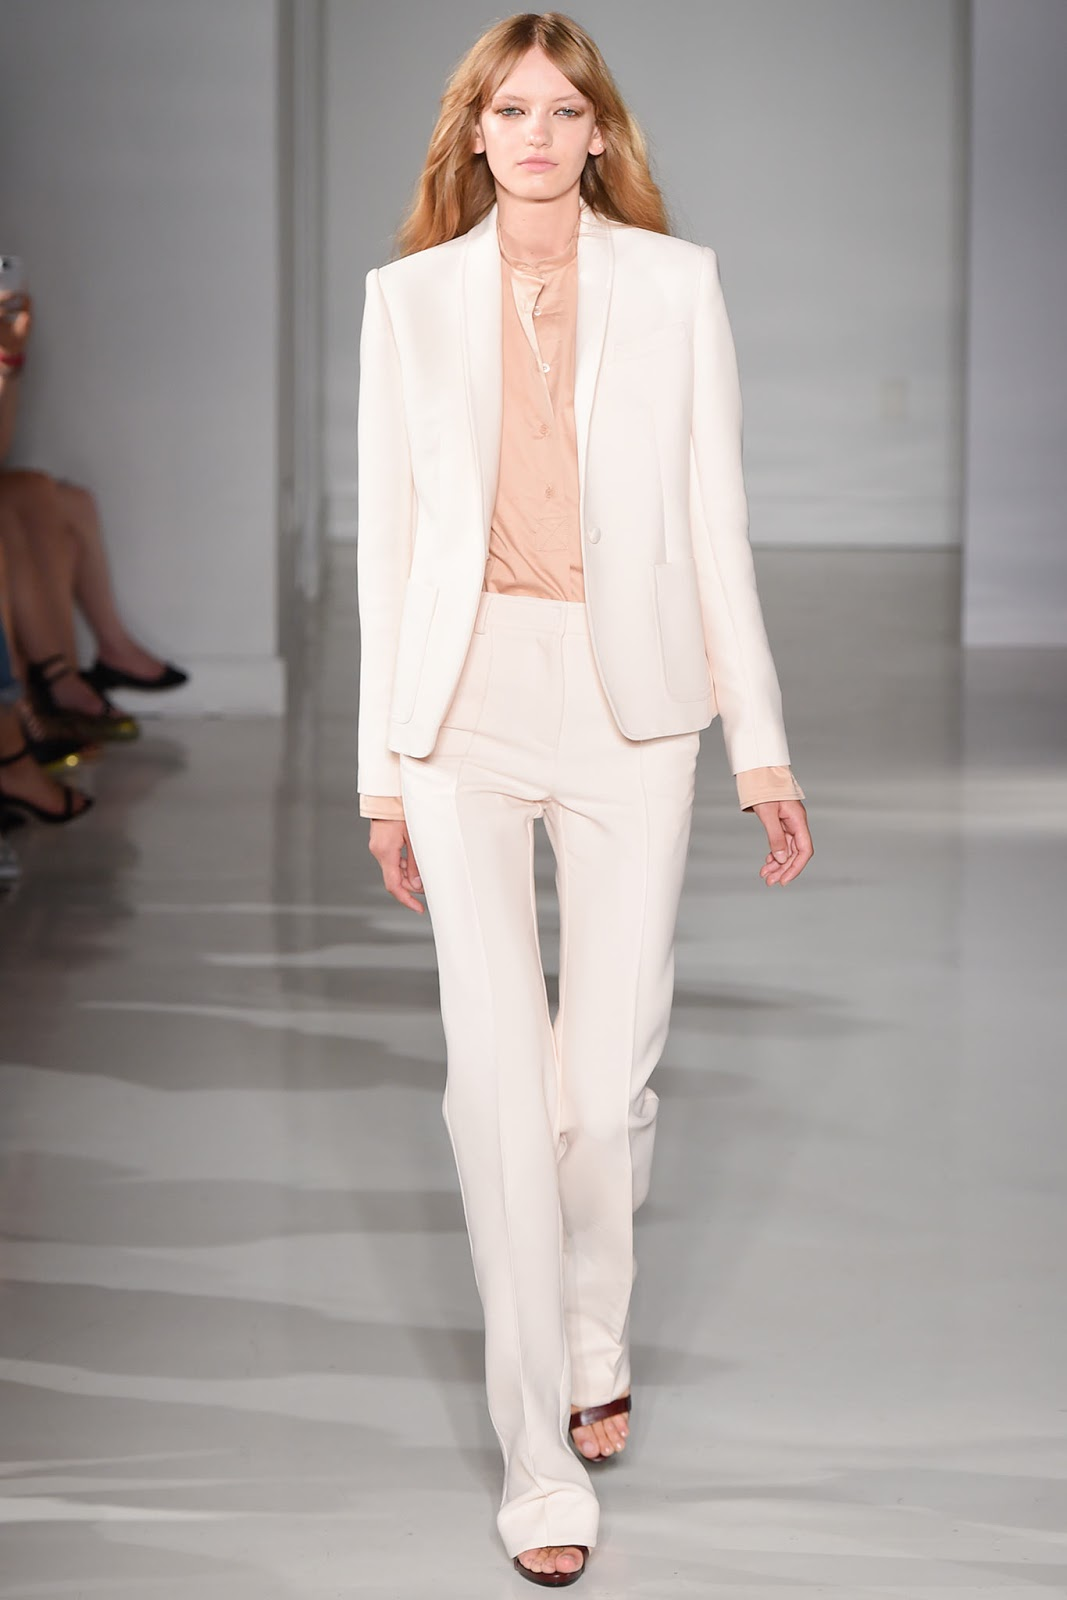 Jill Stuart / Spring/Summer 2015 trends / trouser suit / styling tips and outfit inspiration / via fashioned by love british fashion blog